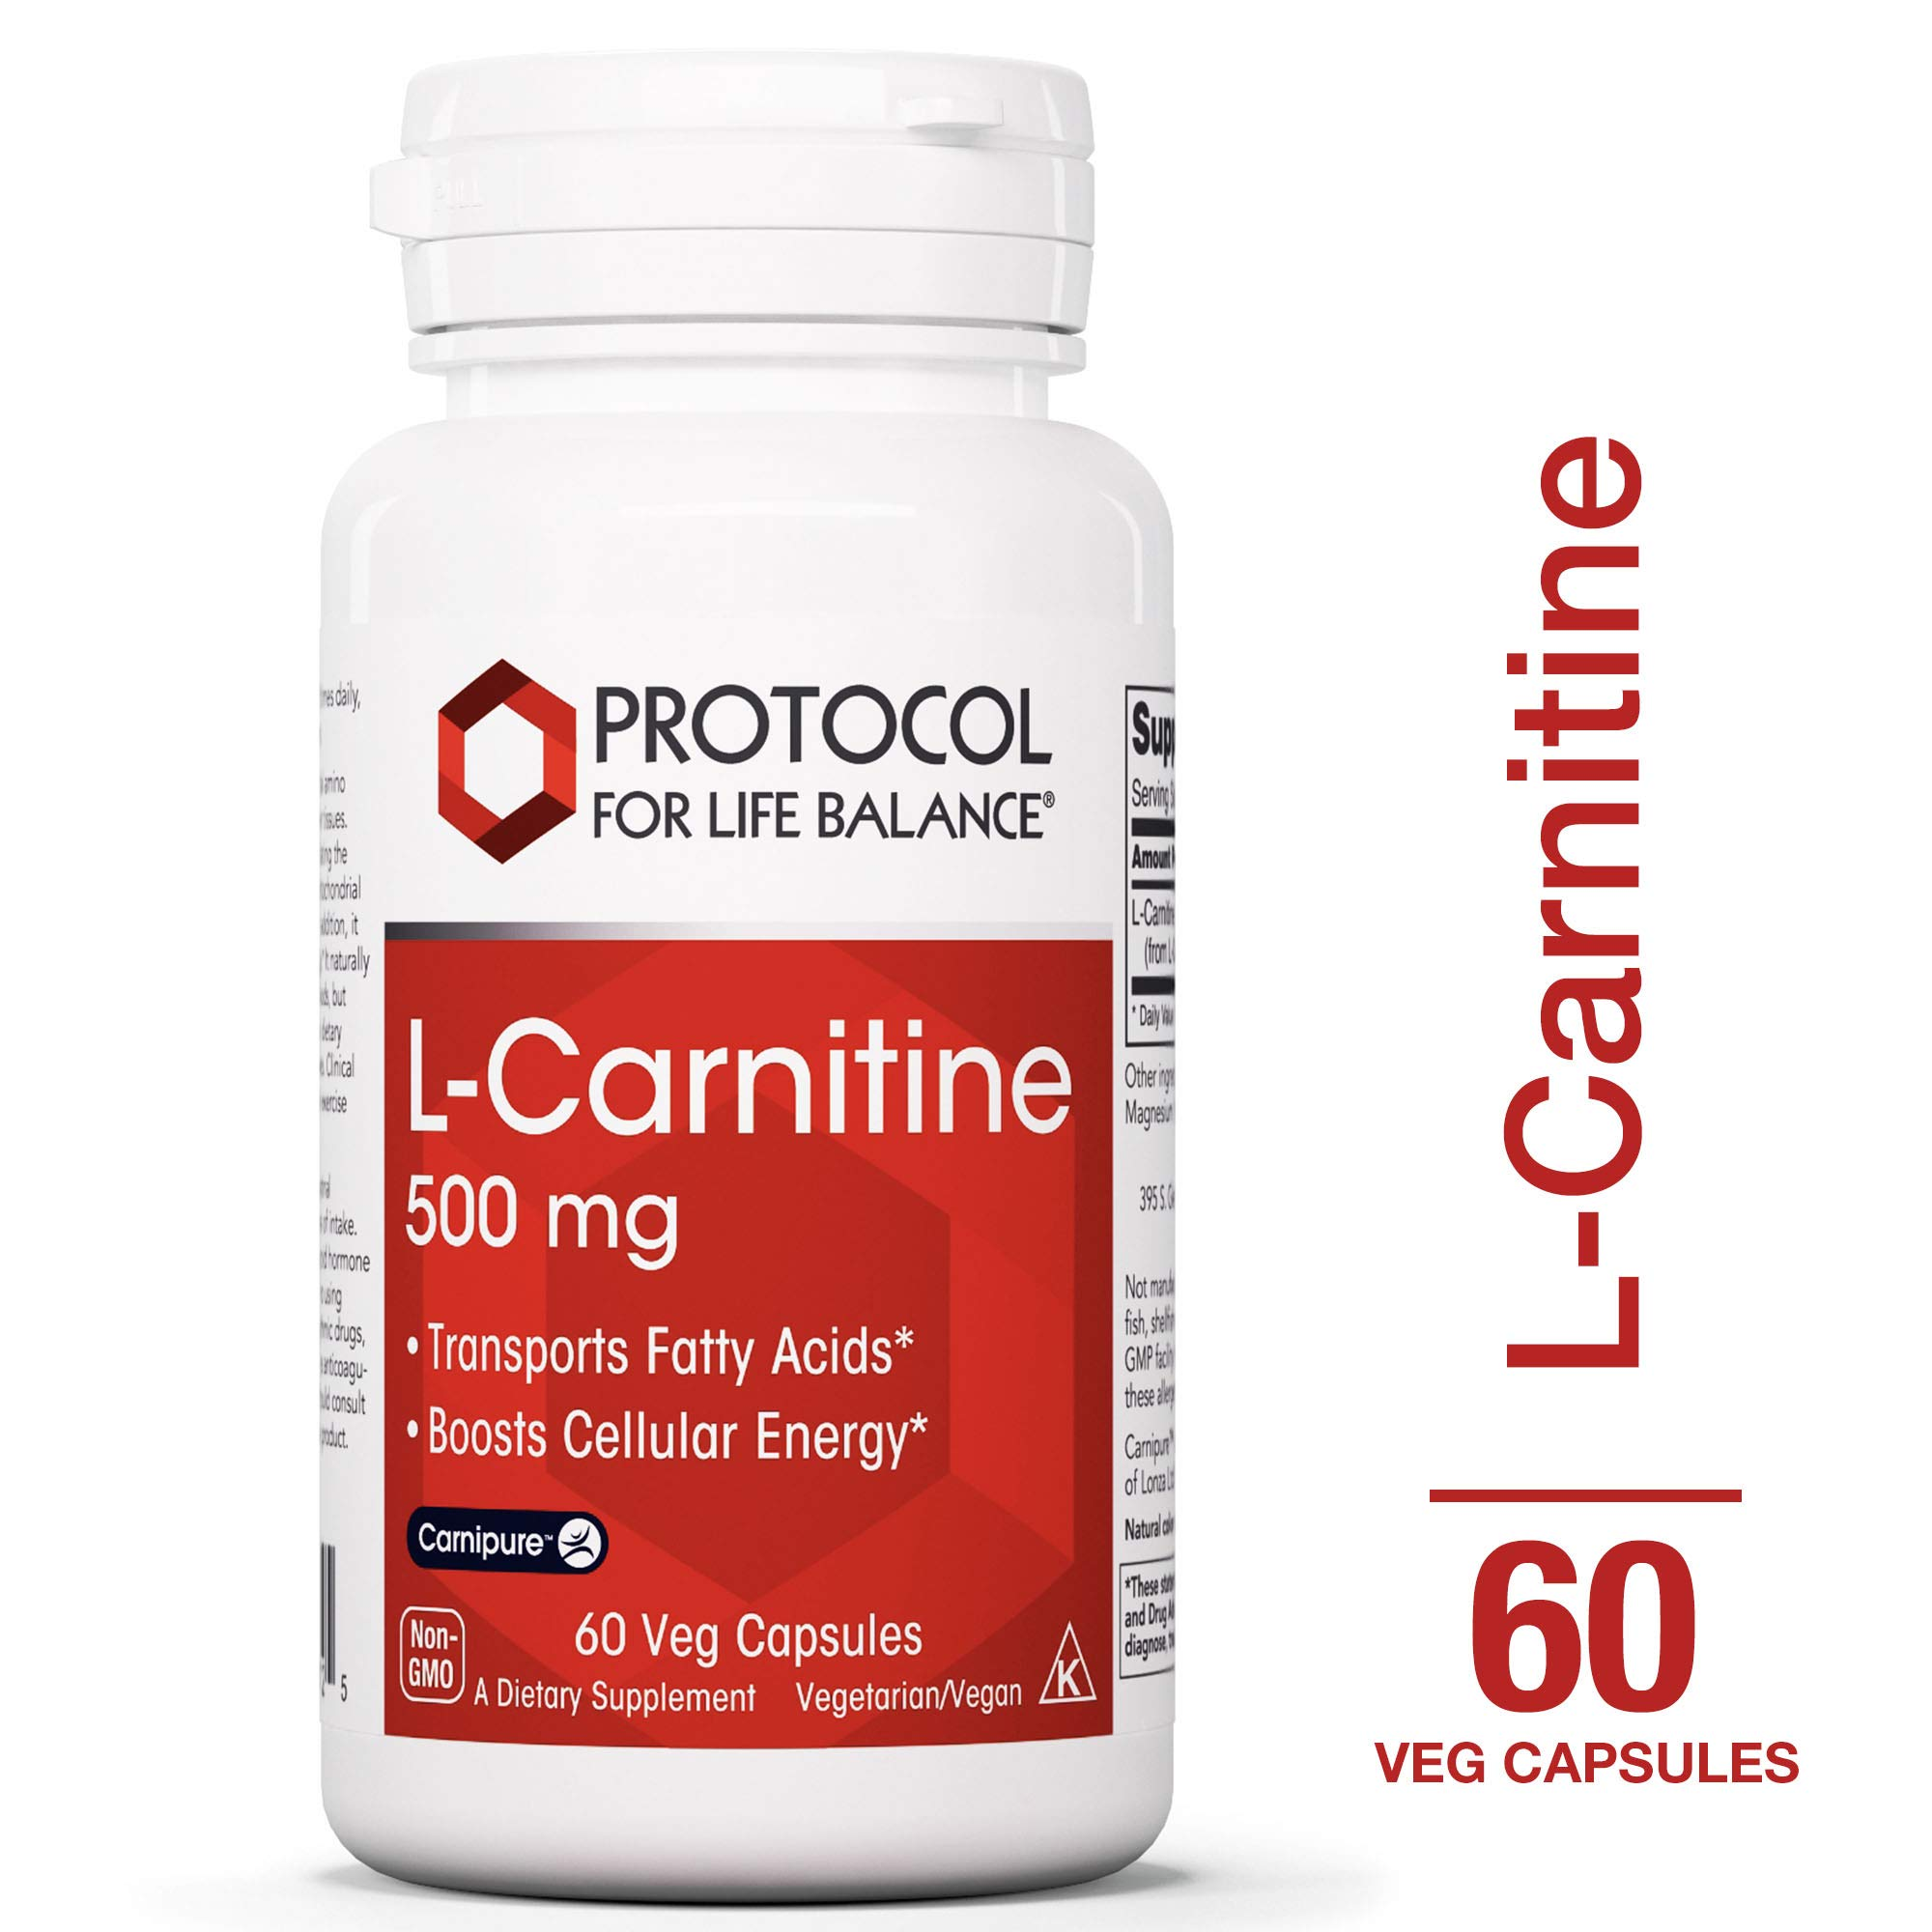 Protocol For Life Balance - L-Carnitine 500 mg - Transports Fatty Acids and Boosts Cellular Energy with Balanced Nutrition for Improved Performance & Recovery - 60 Veg Caps by Protocol For Life Balance